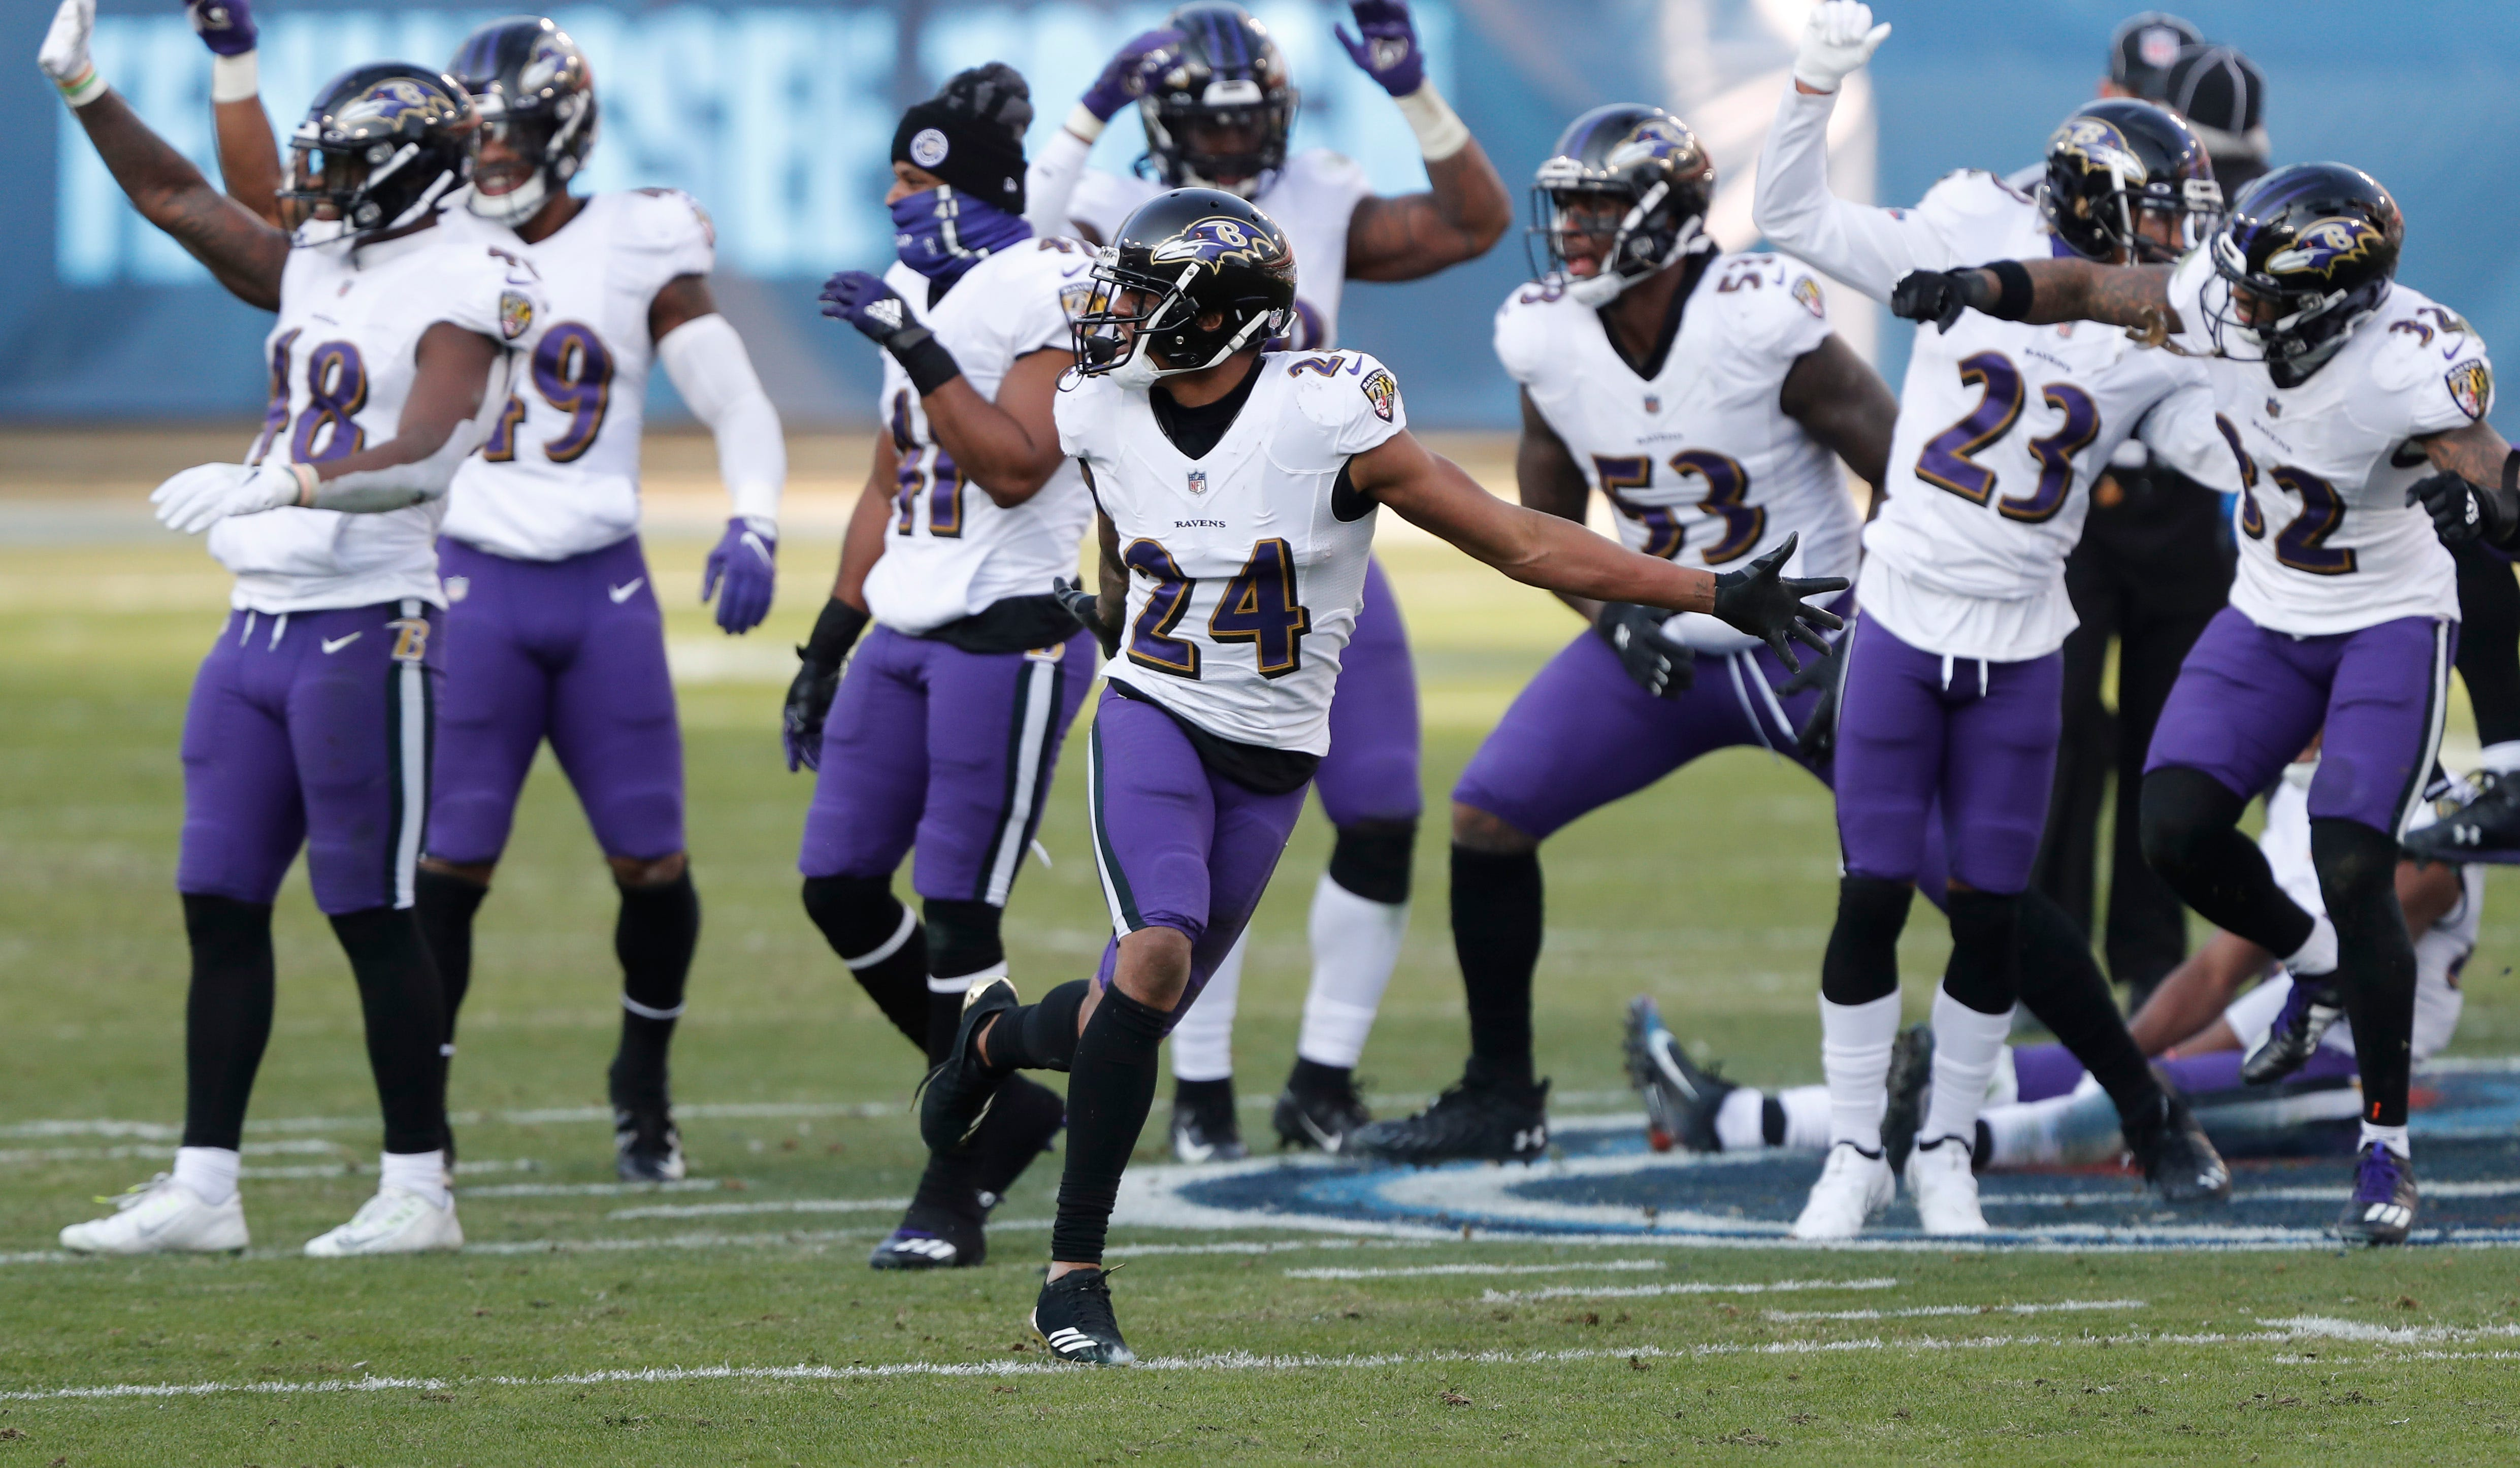 Ravens defense celebrates playoff win by dancing, stomping Titans logo